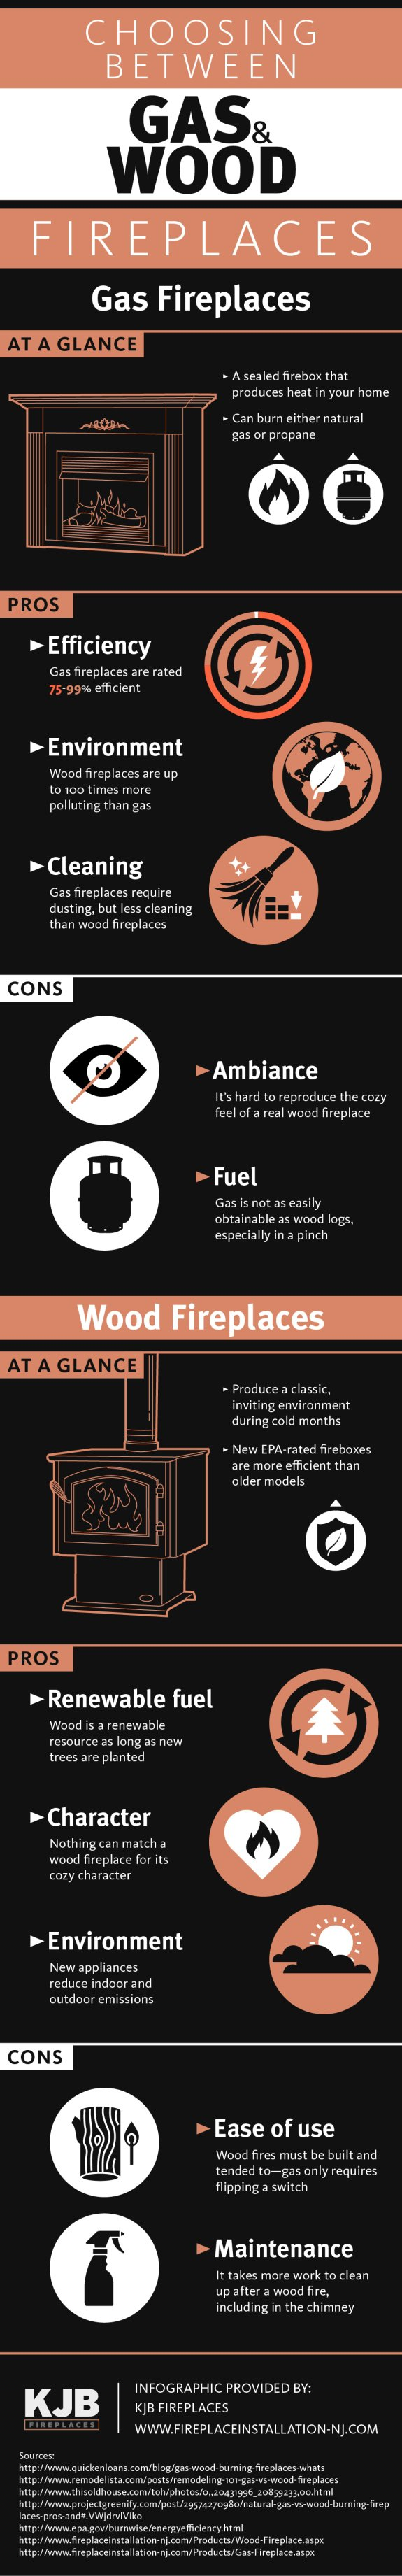 Choosing Gas Wood Fireplaces Infographic